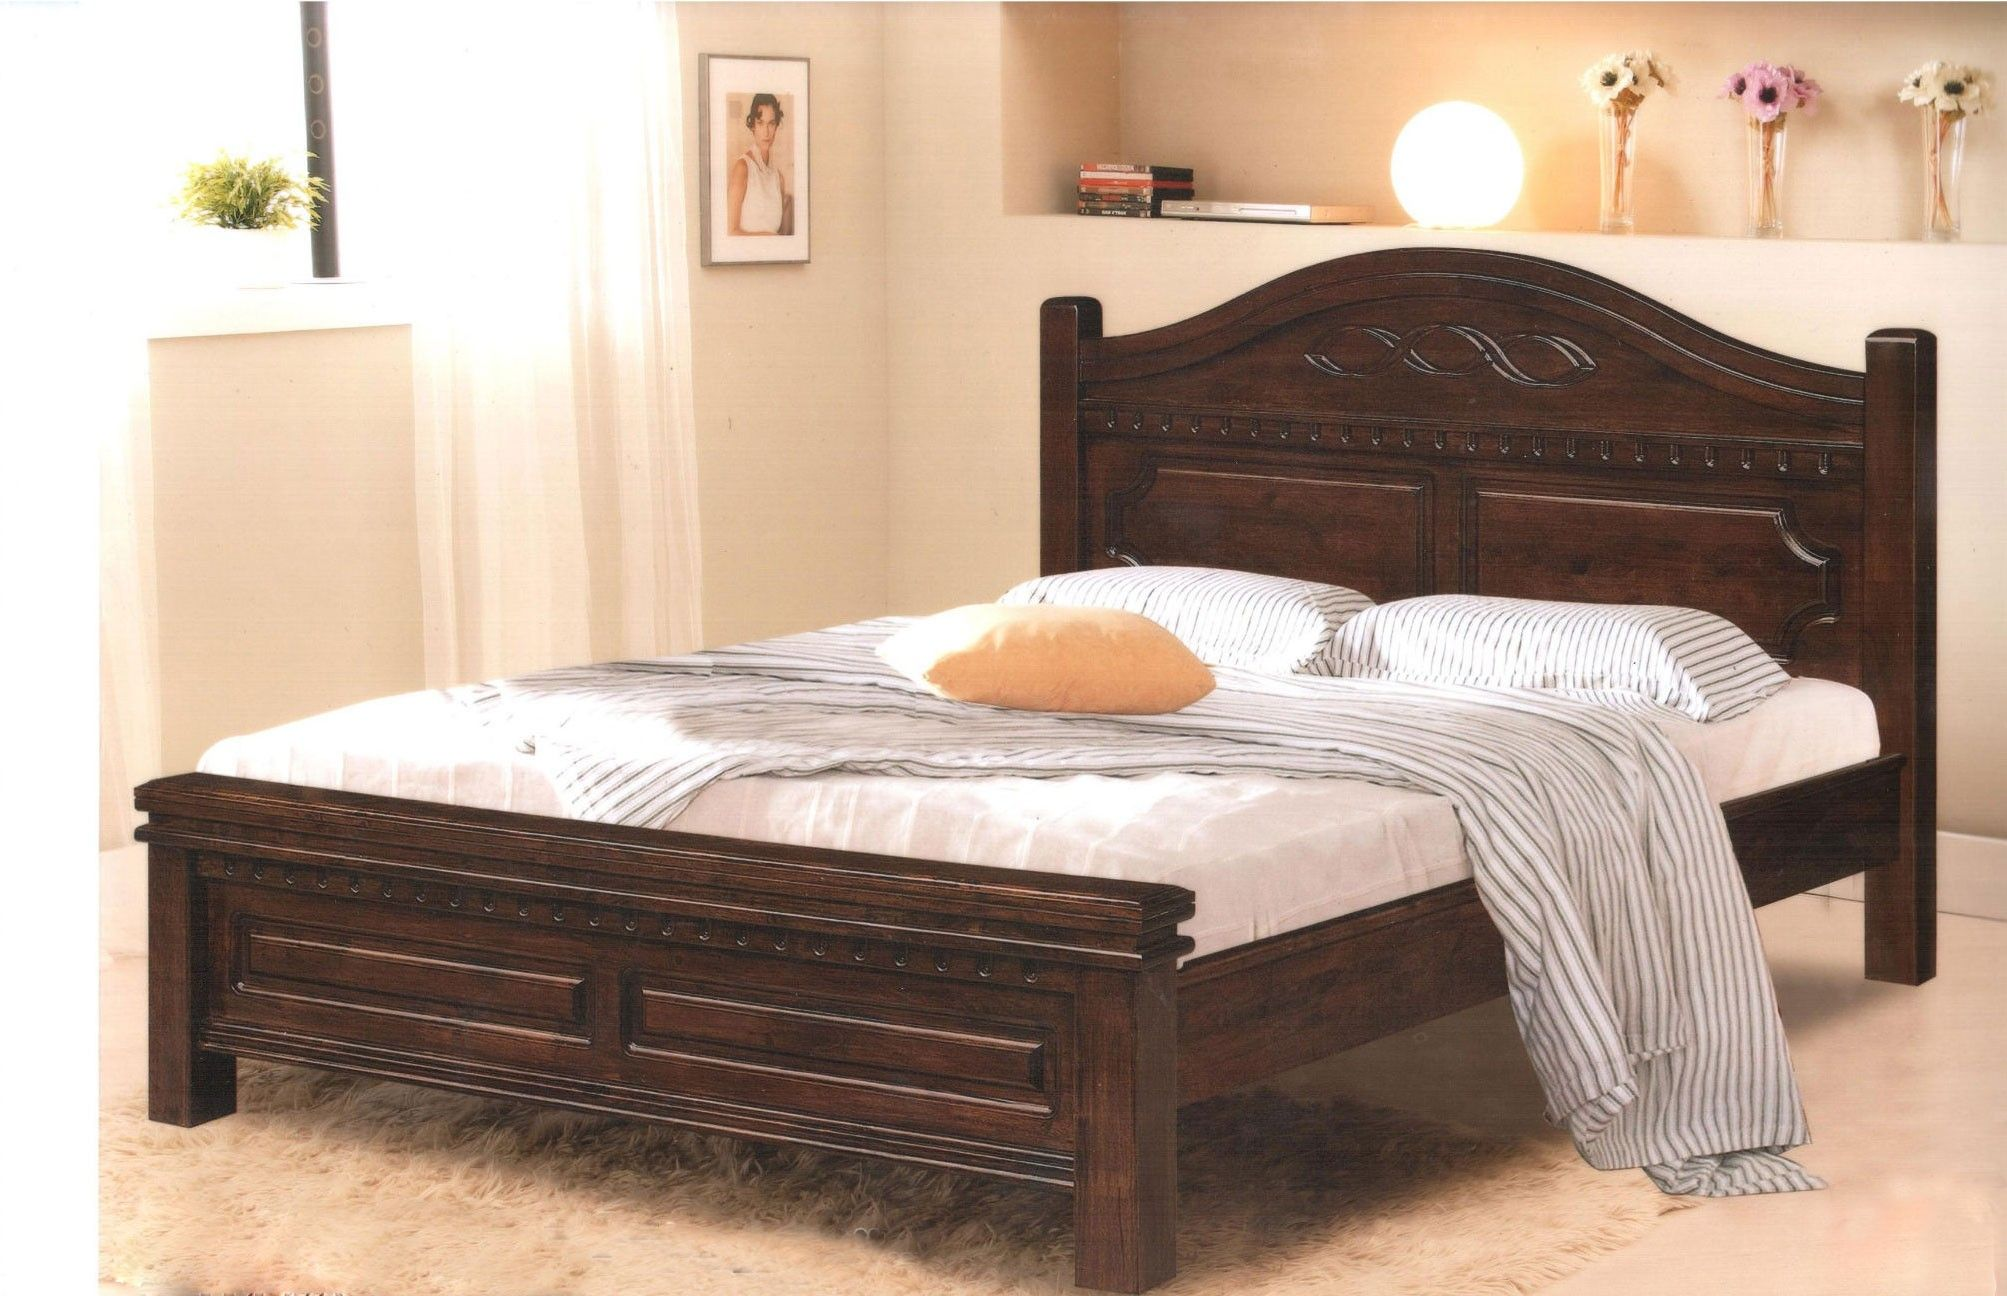 Elegant Full Size Wooden Bed Frame With Headboard In 2020 King Size Wood Bed Frame Wooden Bed Frames Bed Frame